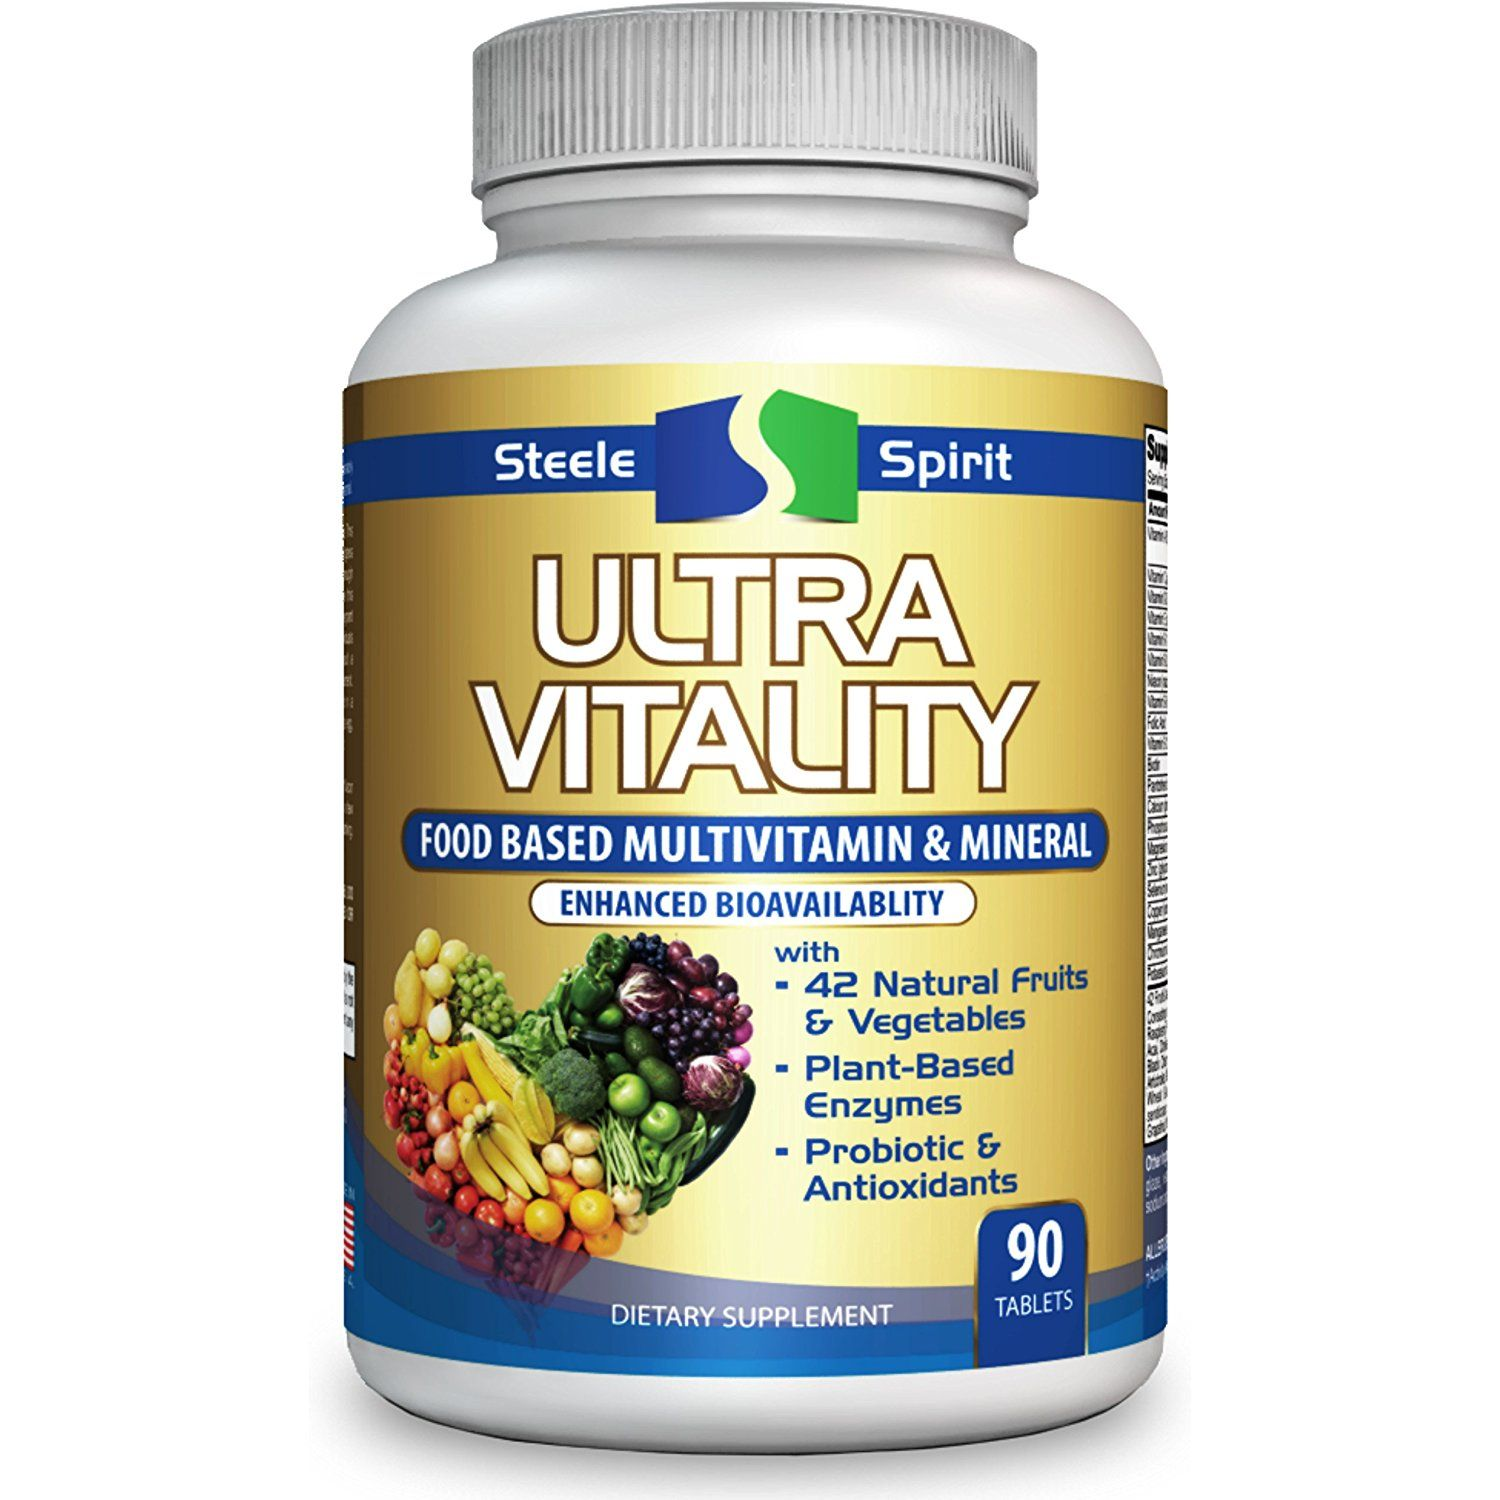 Daily multivitamin for women healthhousehold whole food